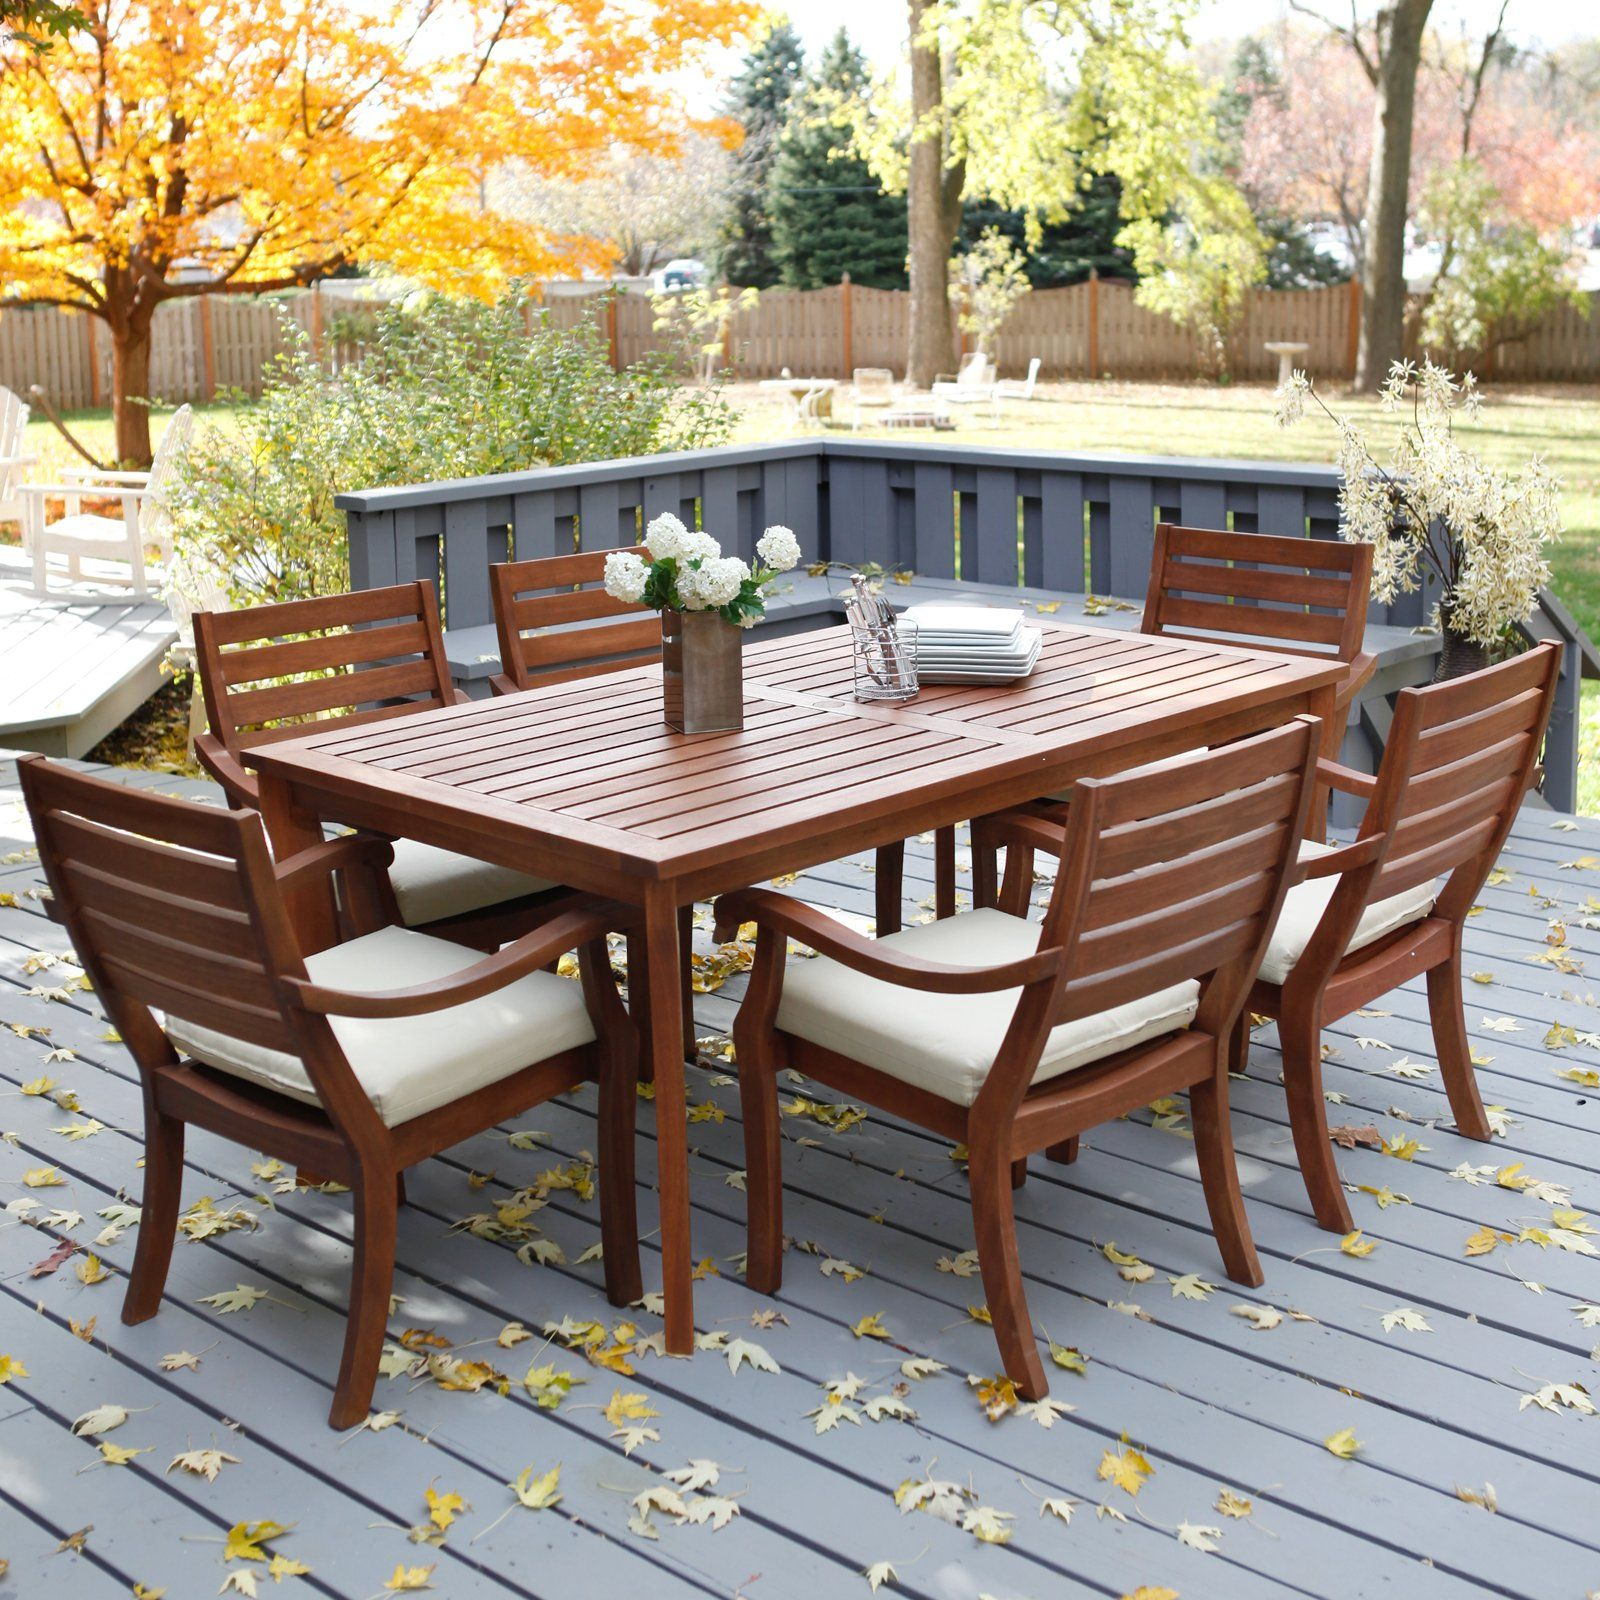 Wooden Garden Patio Furniture Decoration Wood Patio inside sizing 1600 X 1600